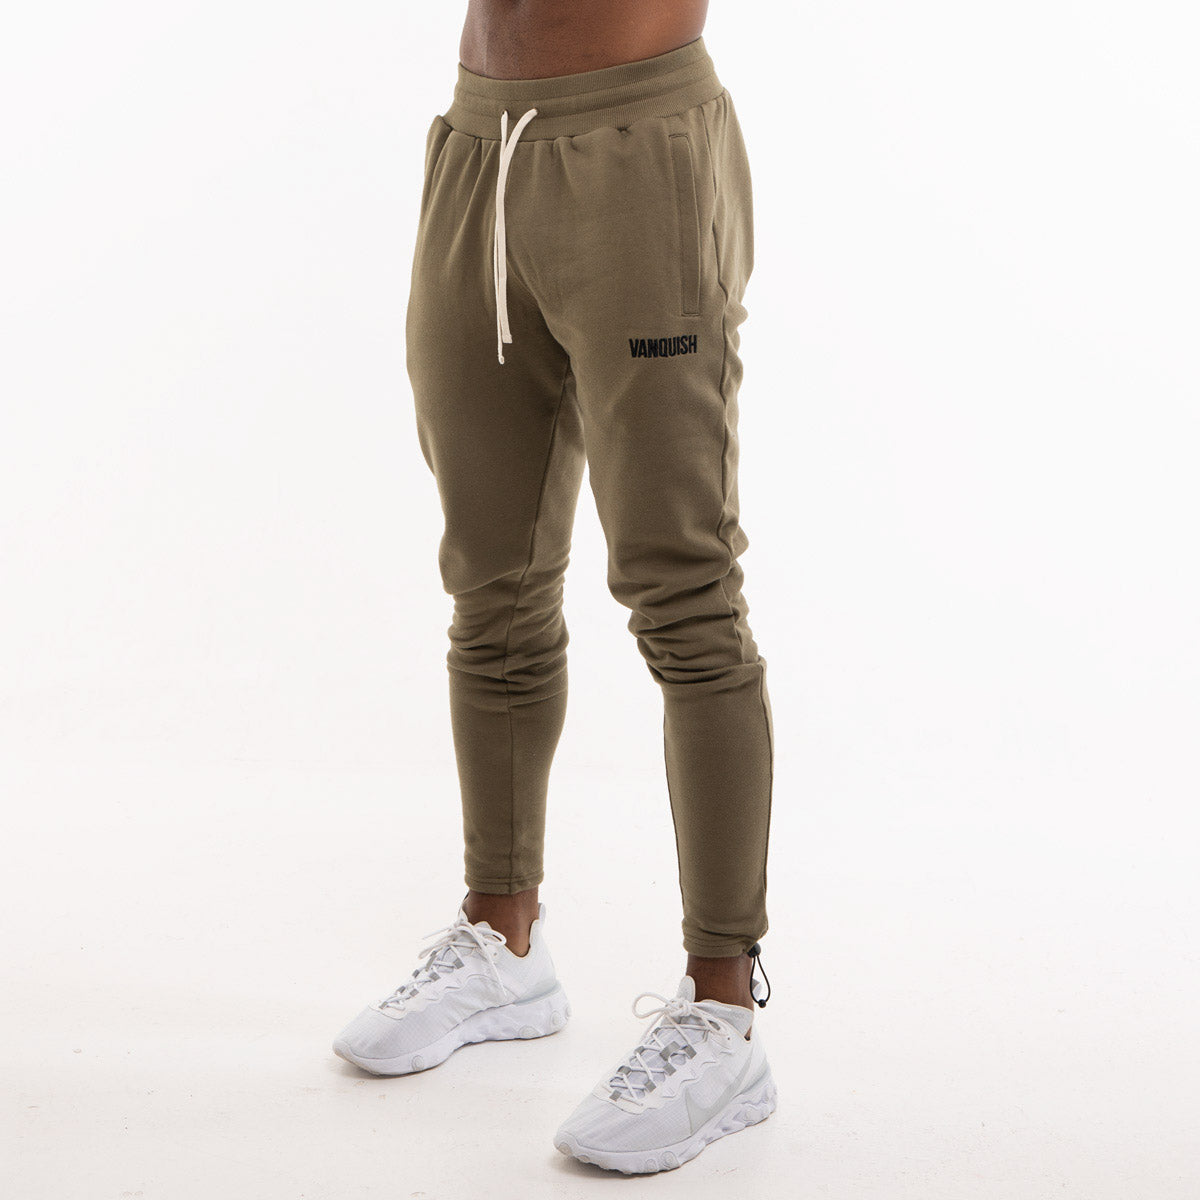 Vanquish Warm Up Project Olive Tapered Sweatpants